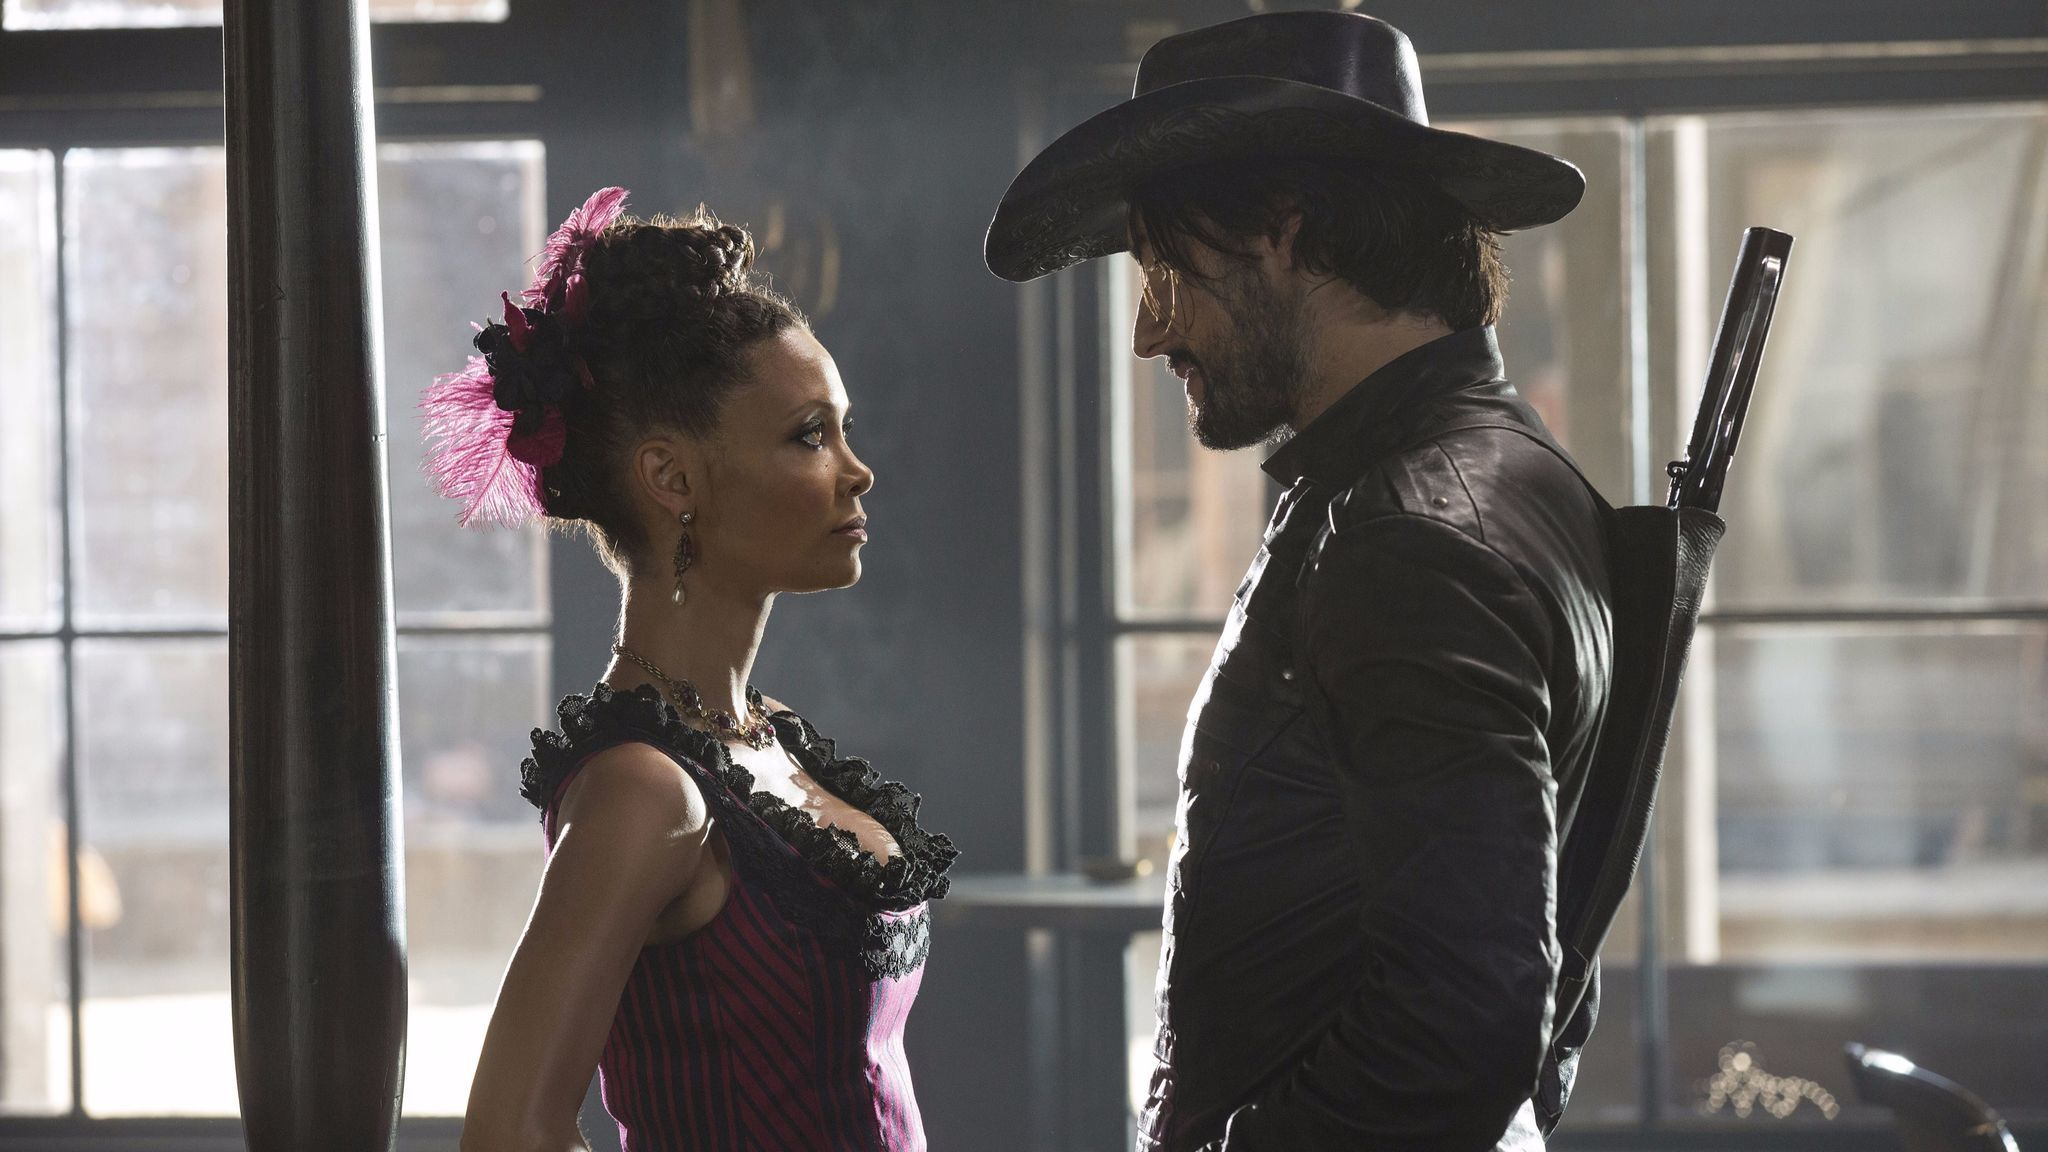 Thandie Newton as Maeve Milay and Rodrigo Santoro as Hector Escaton in a scene from HBO's